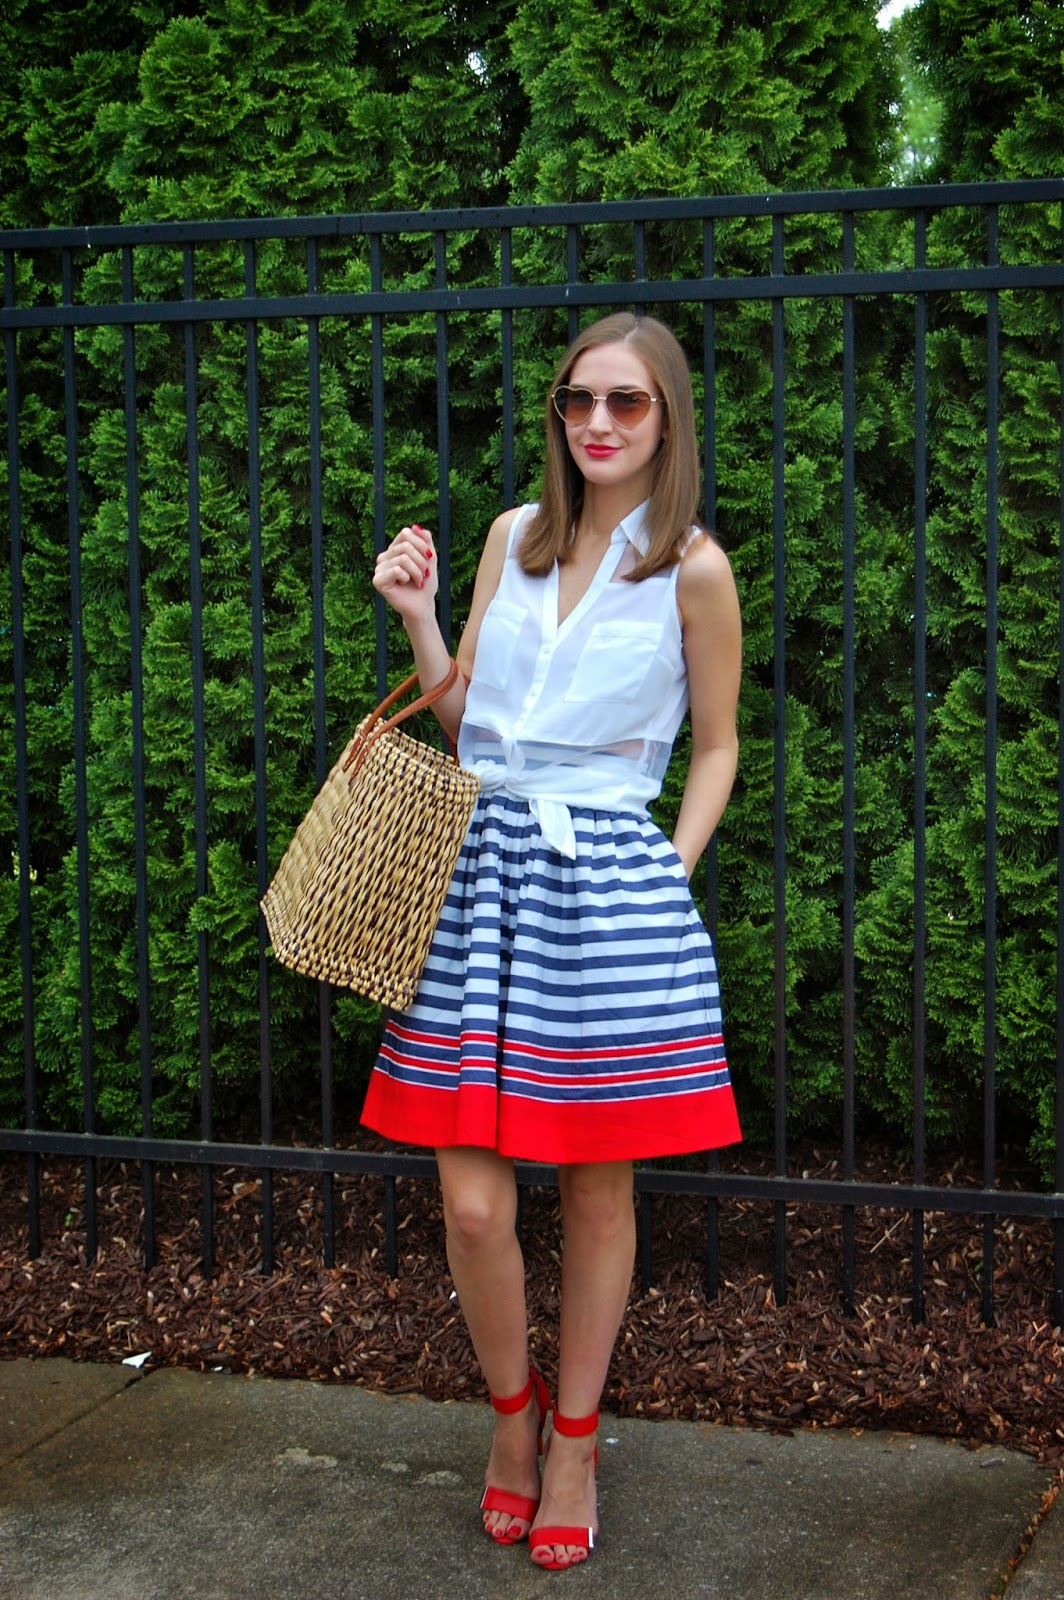 Wearing a Red, white and blue skirt. Memorial Day Weekend outfit. eShakti Skirt, Wearing heart shaped sunglasses, Summer look